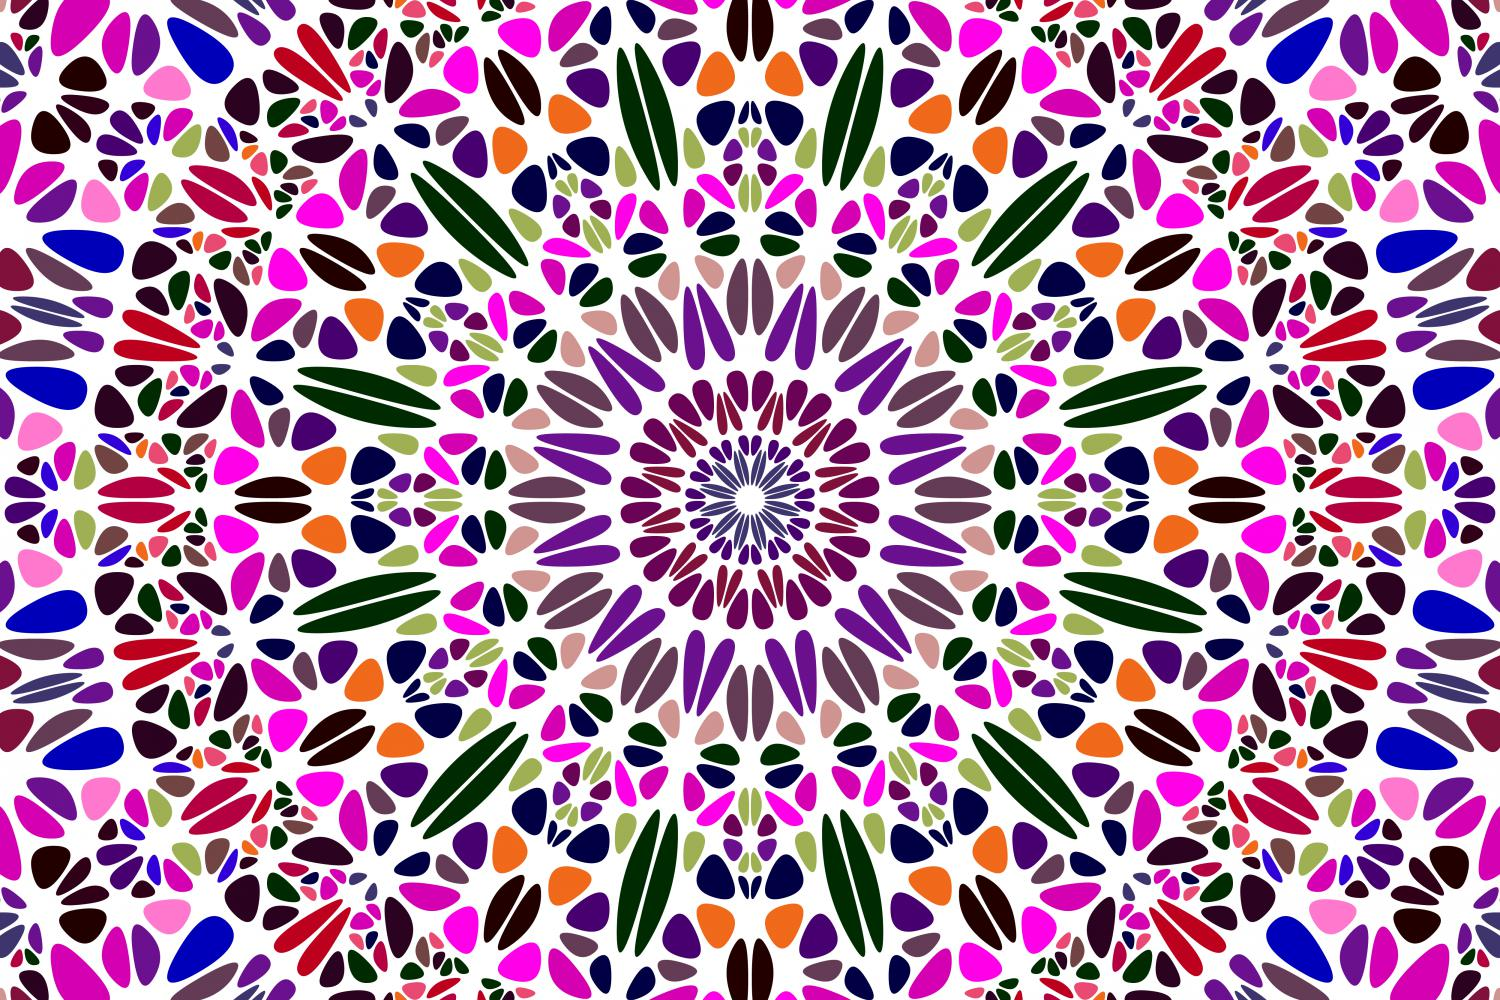 48 Floral Mandala Backgrounds example image 25